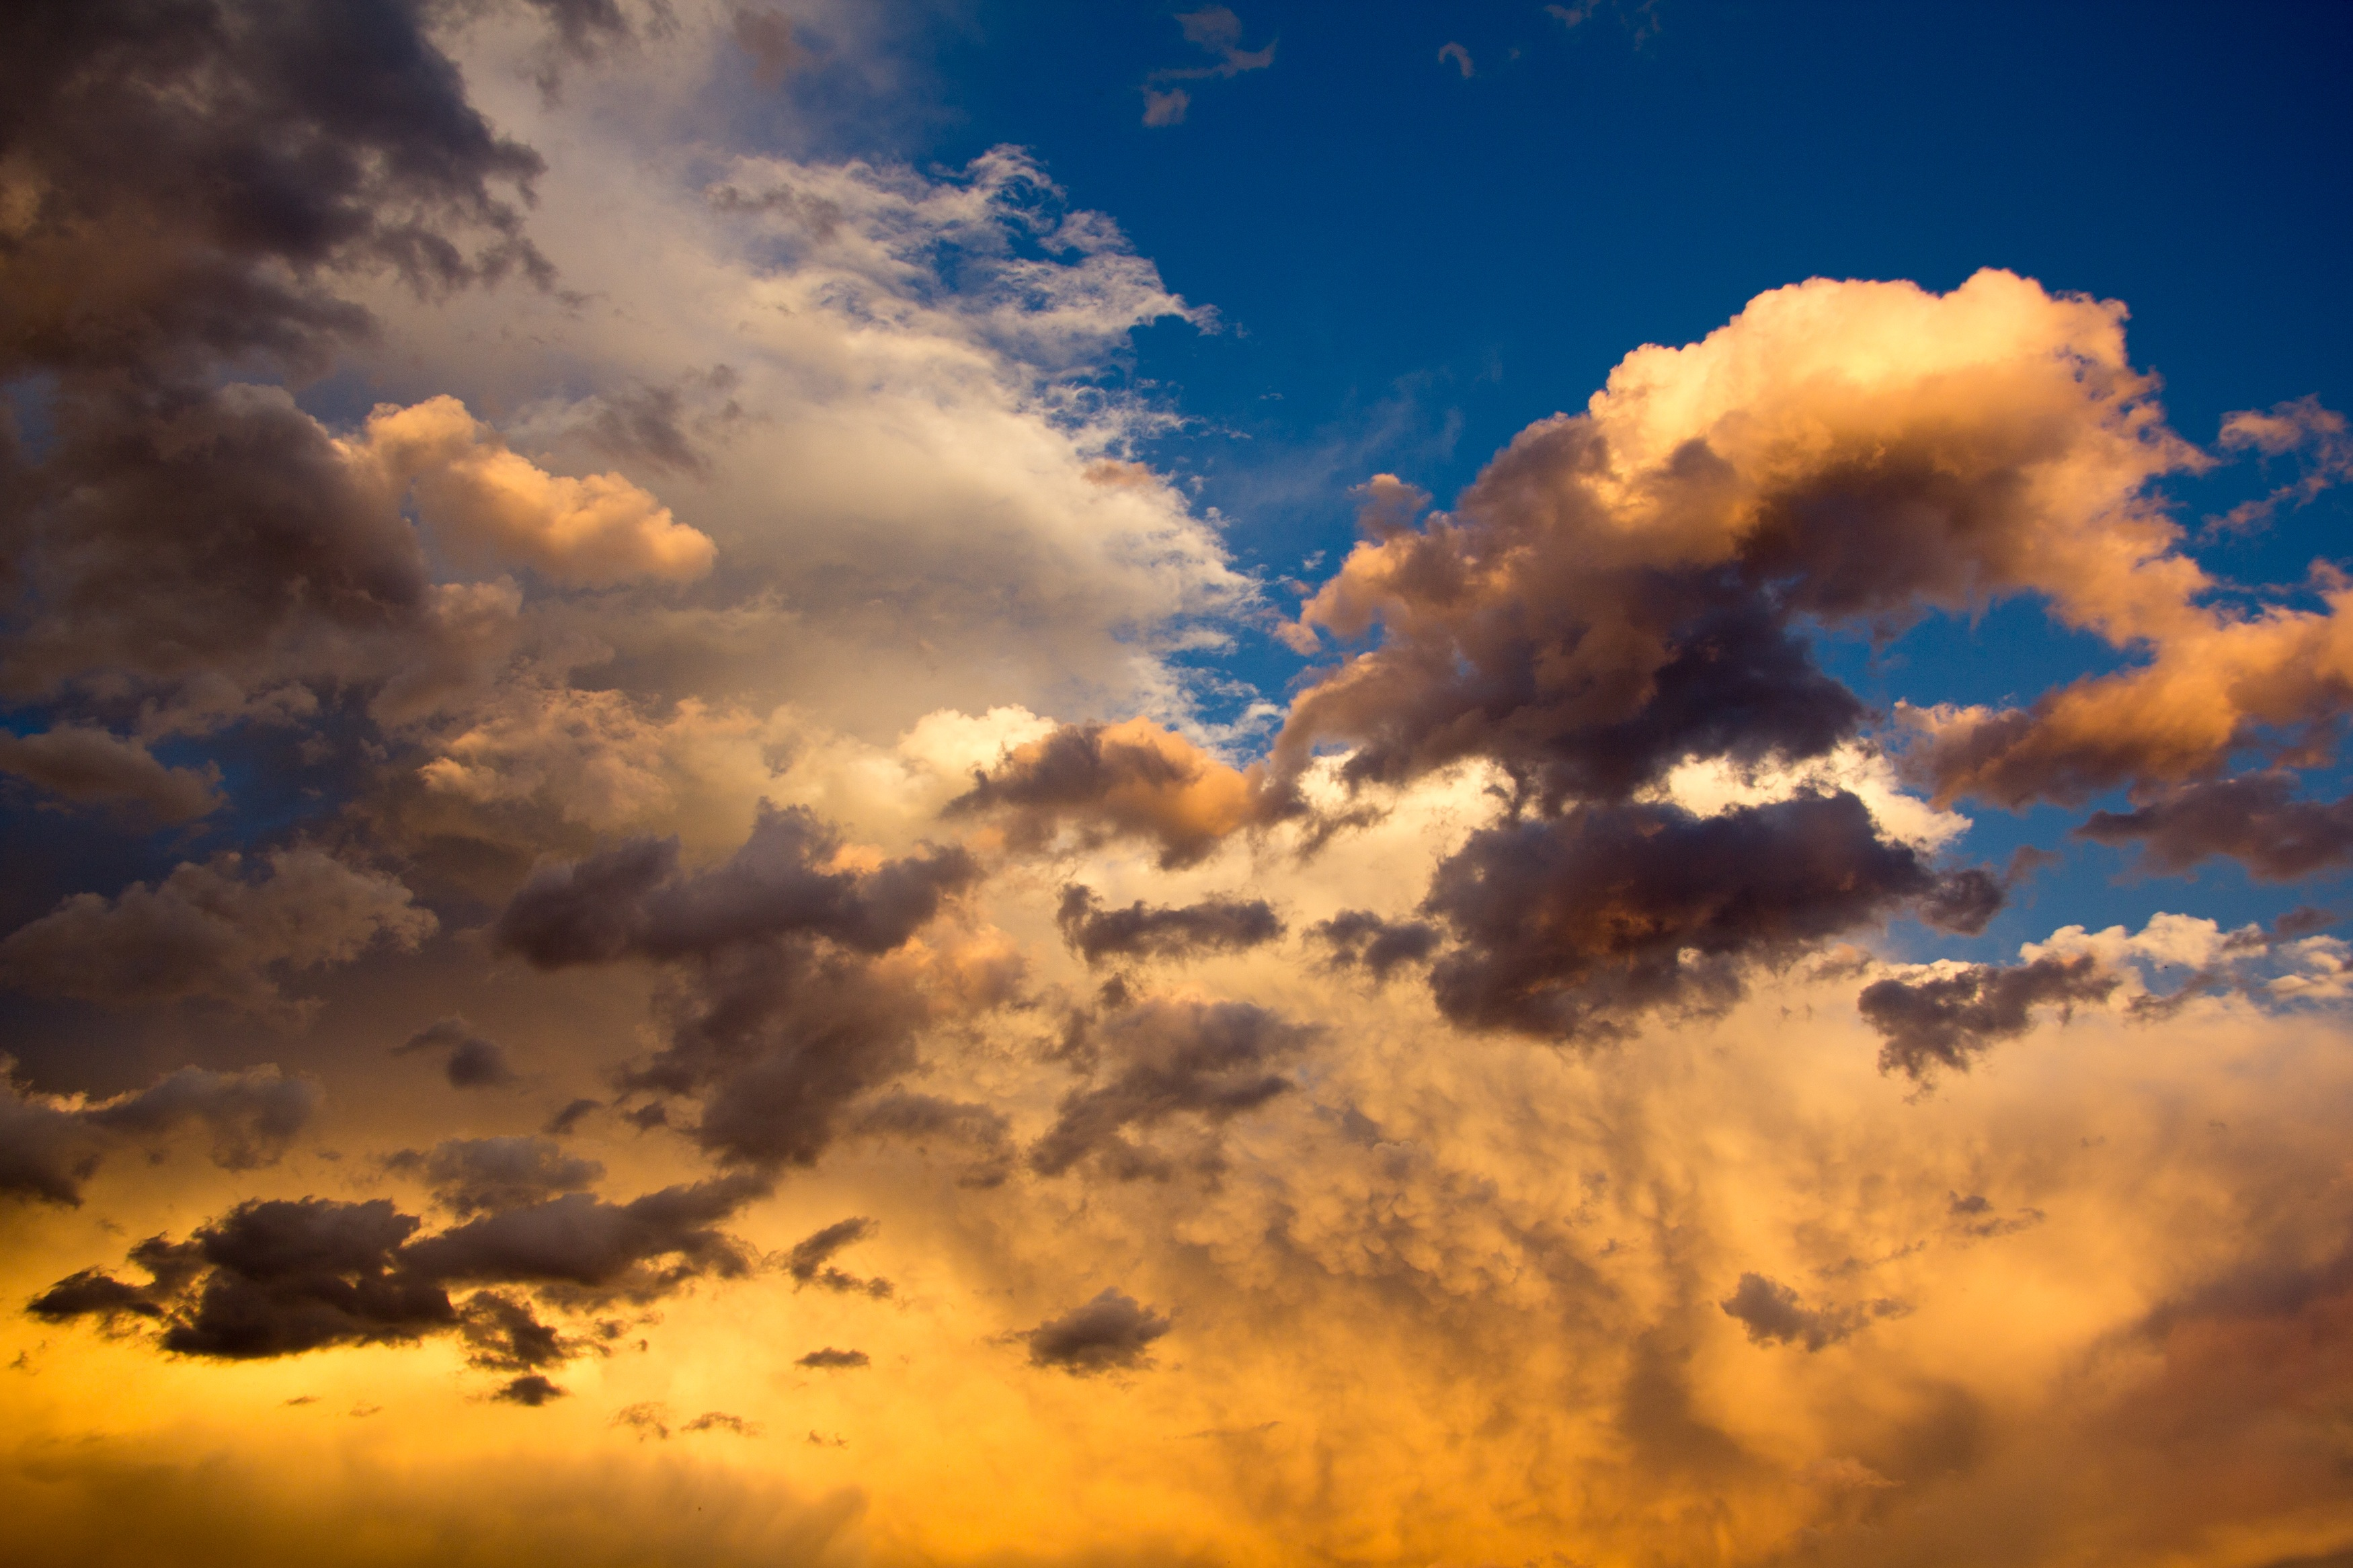 Car Wallpapers 2014 Download Nimbus Clouds On Clear Blue Sky During Golden Hour 183 Free